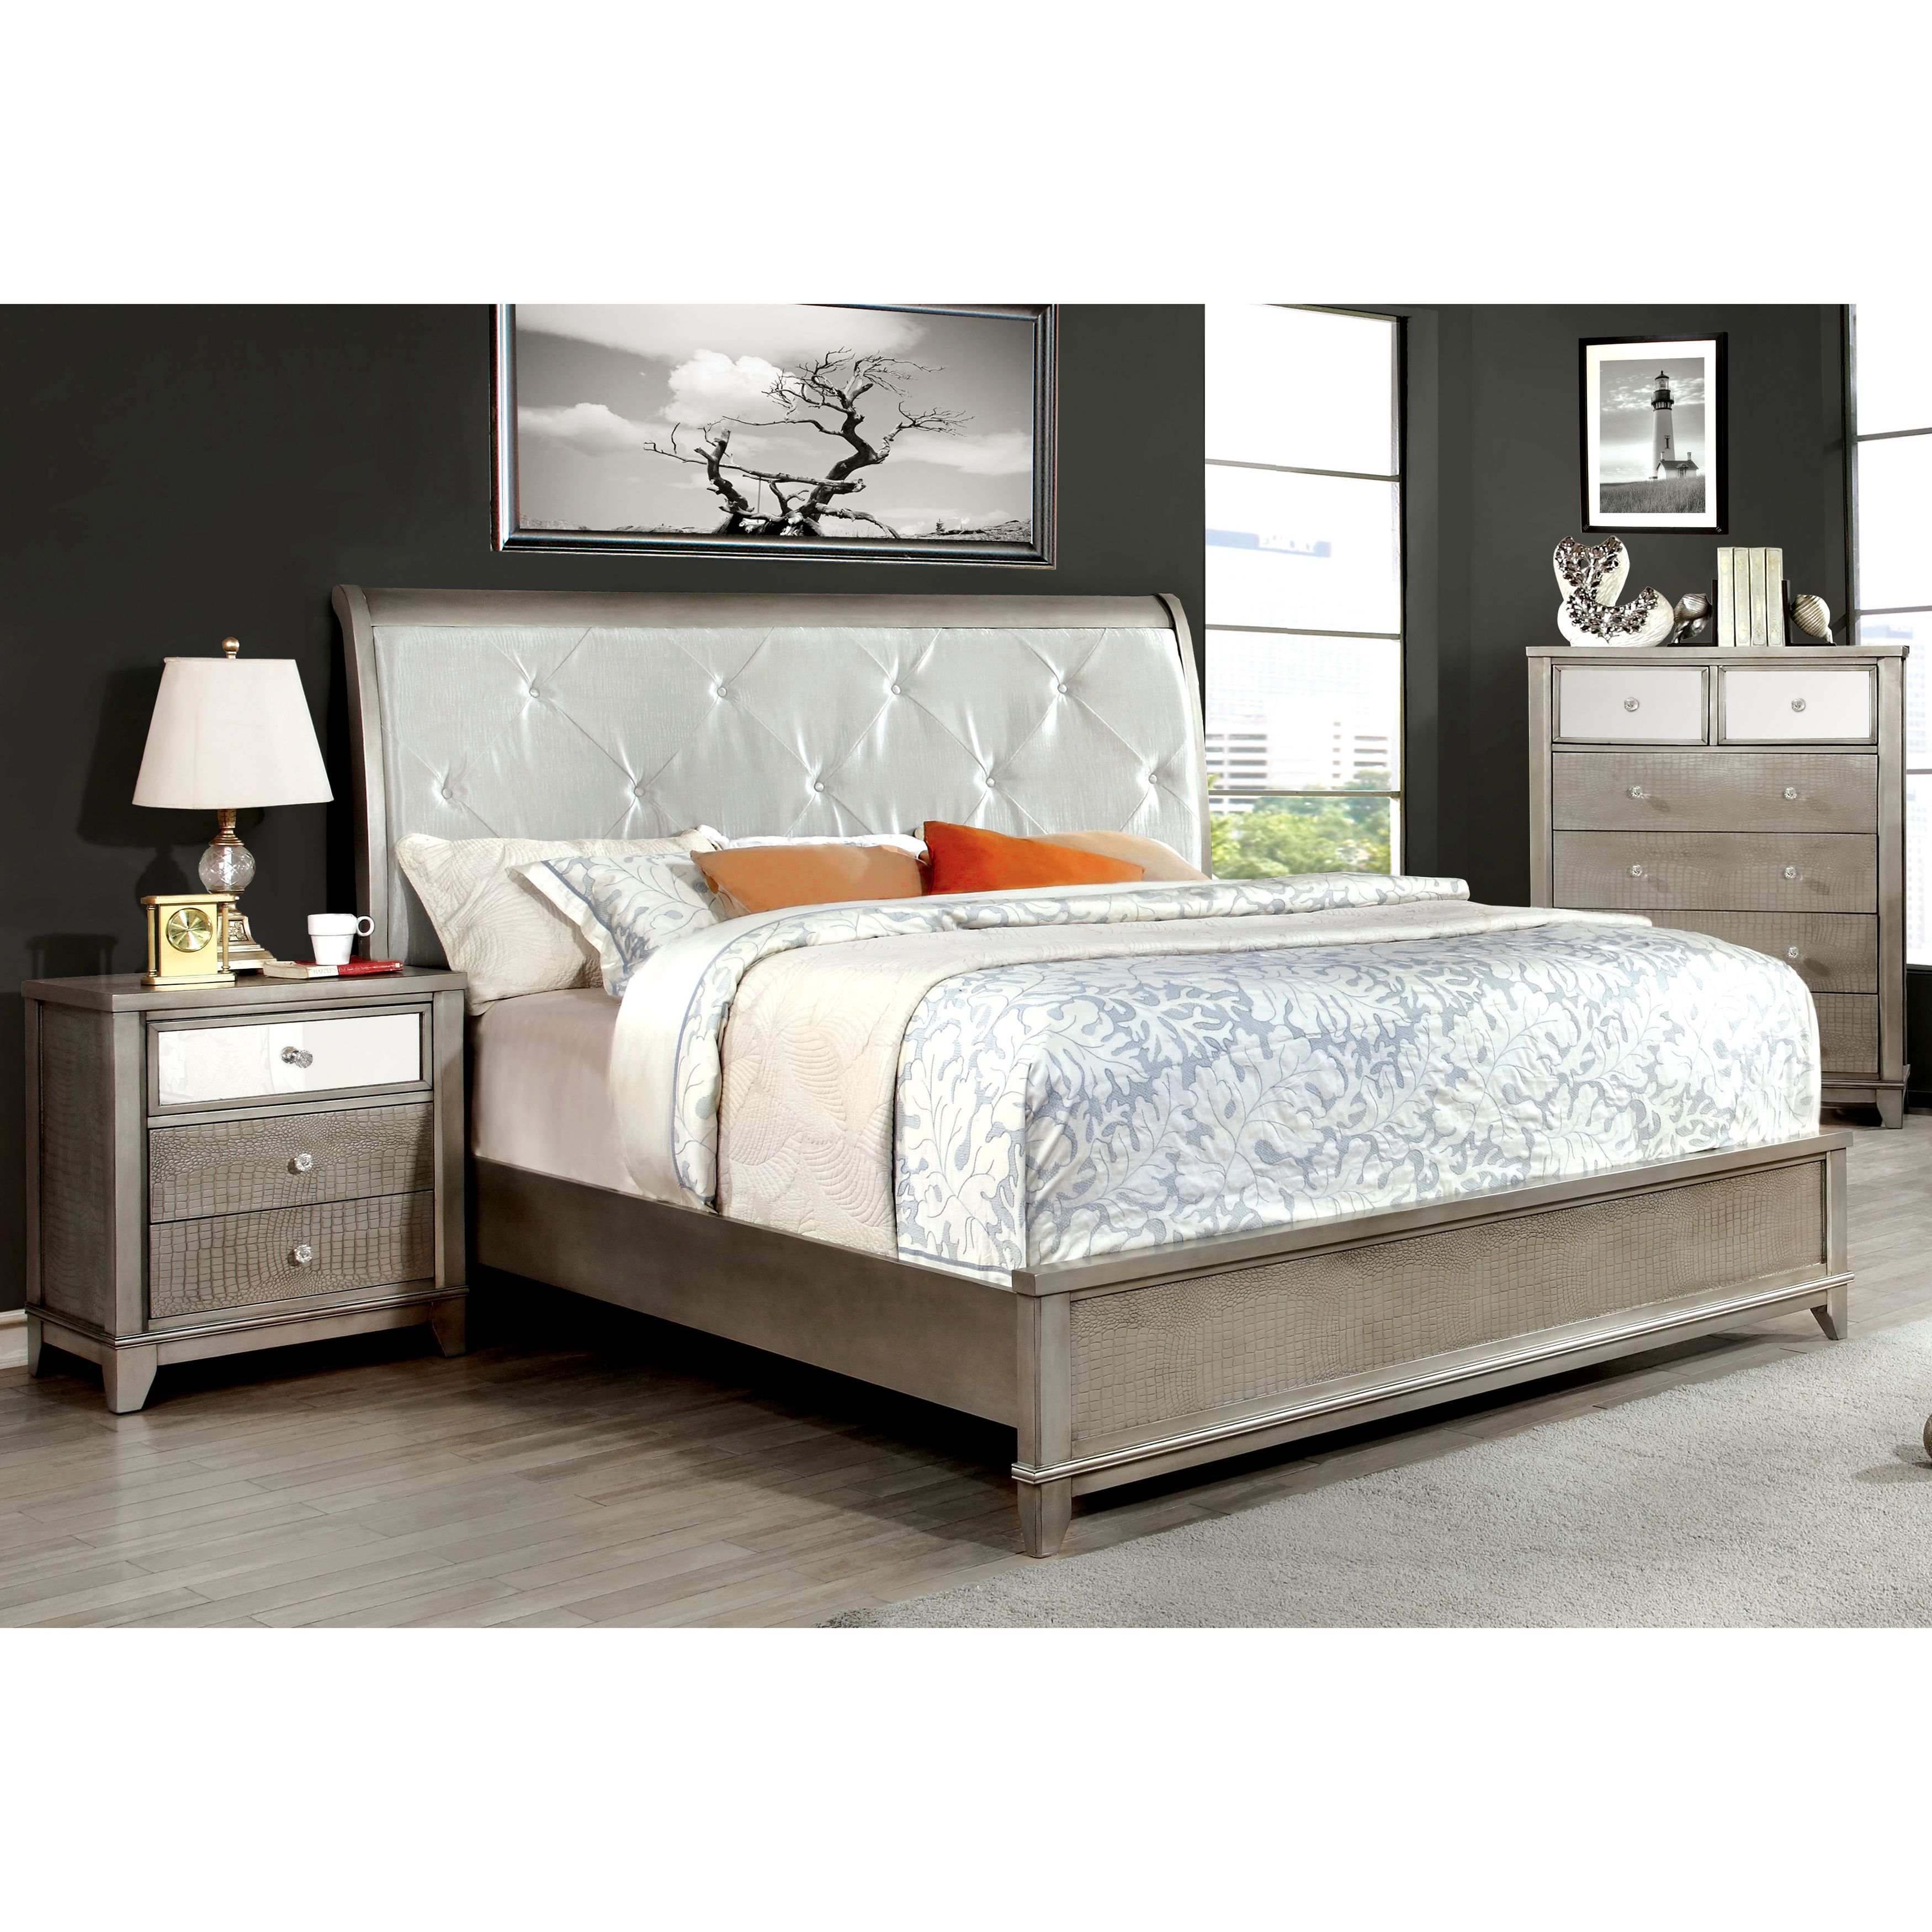 Furniture Of America Divonne Crocodile Silver 2 Piece Bed And